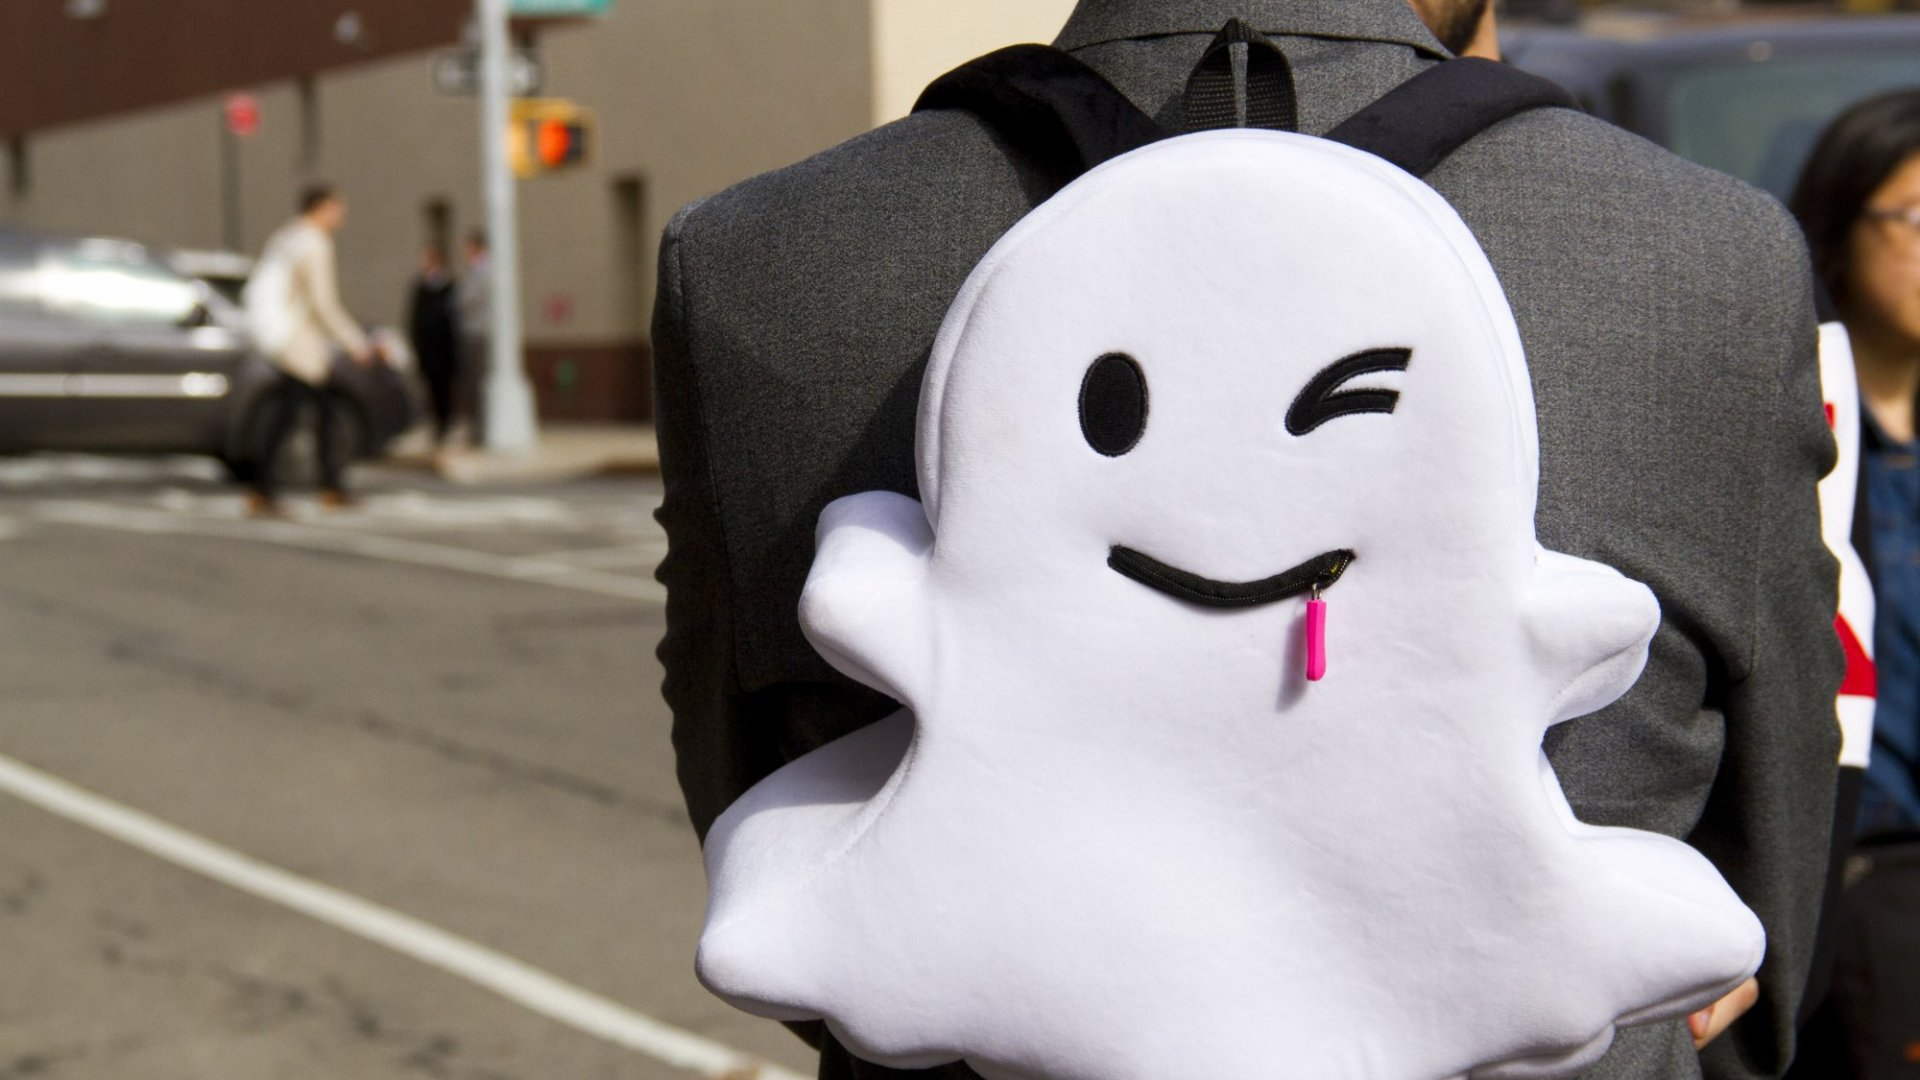 Nonstop Innovation Is Why Snap Won't End Up Like Twitter